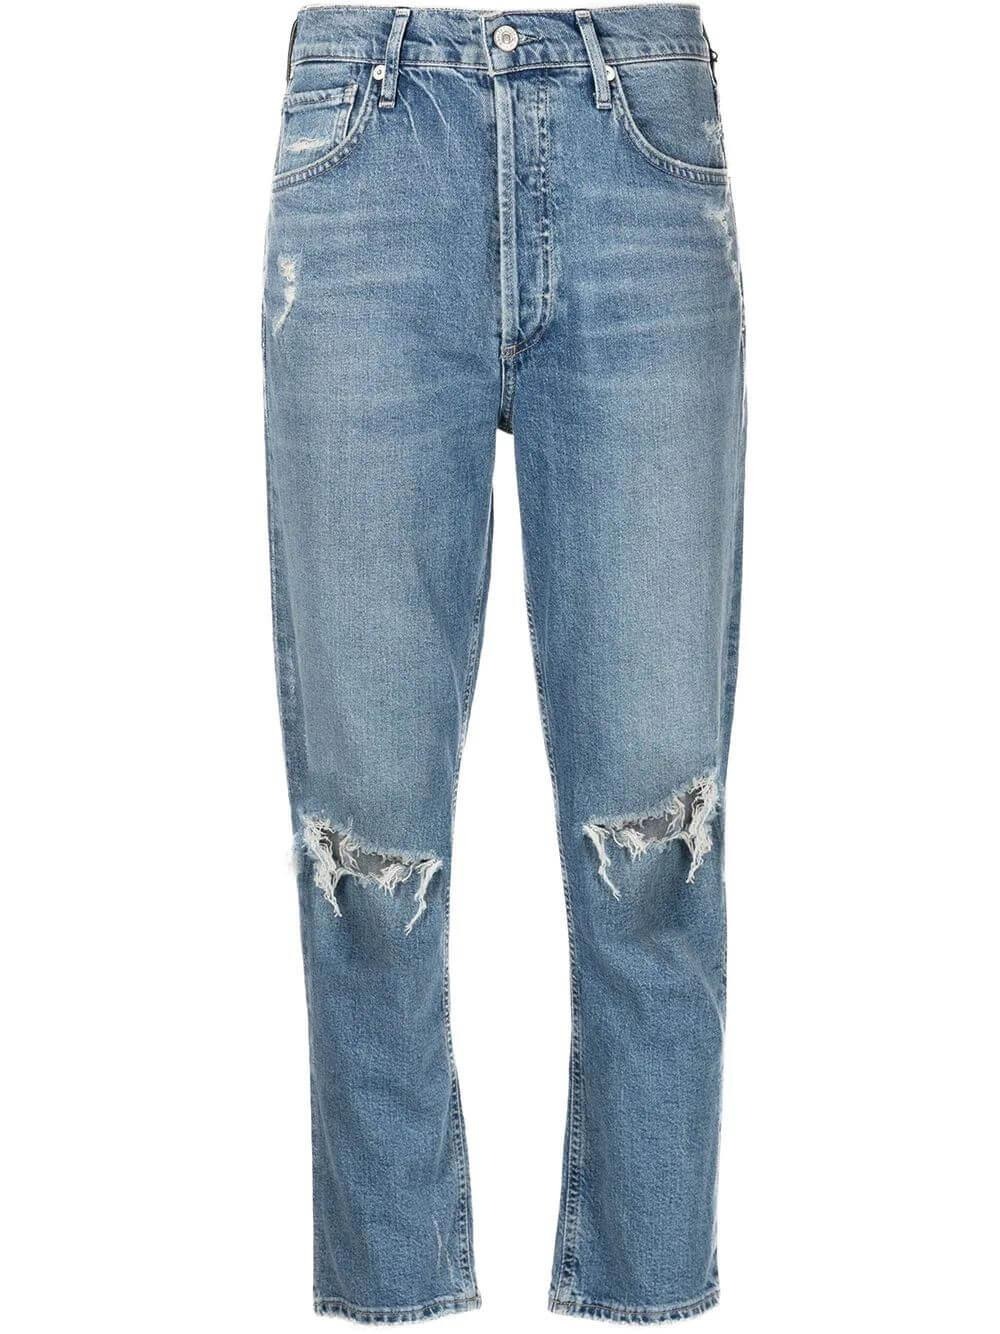 Charlotte Cropped Straight Leg Jeans